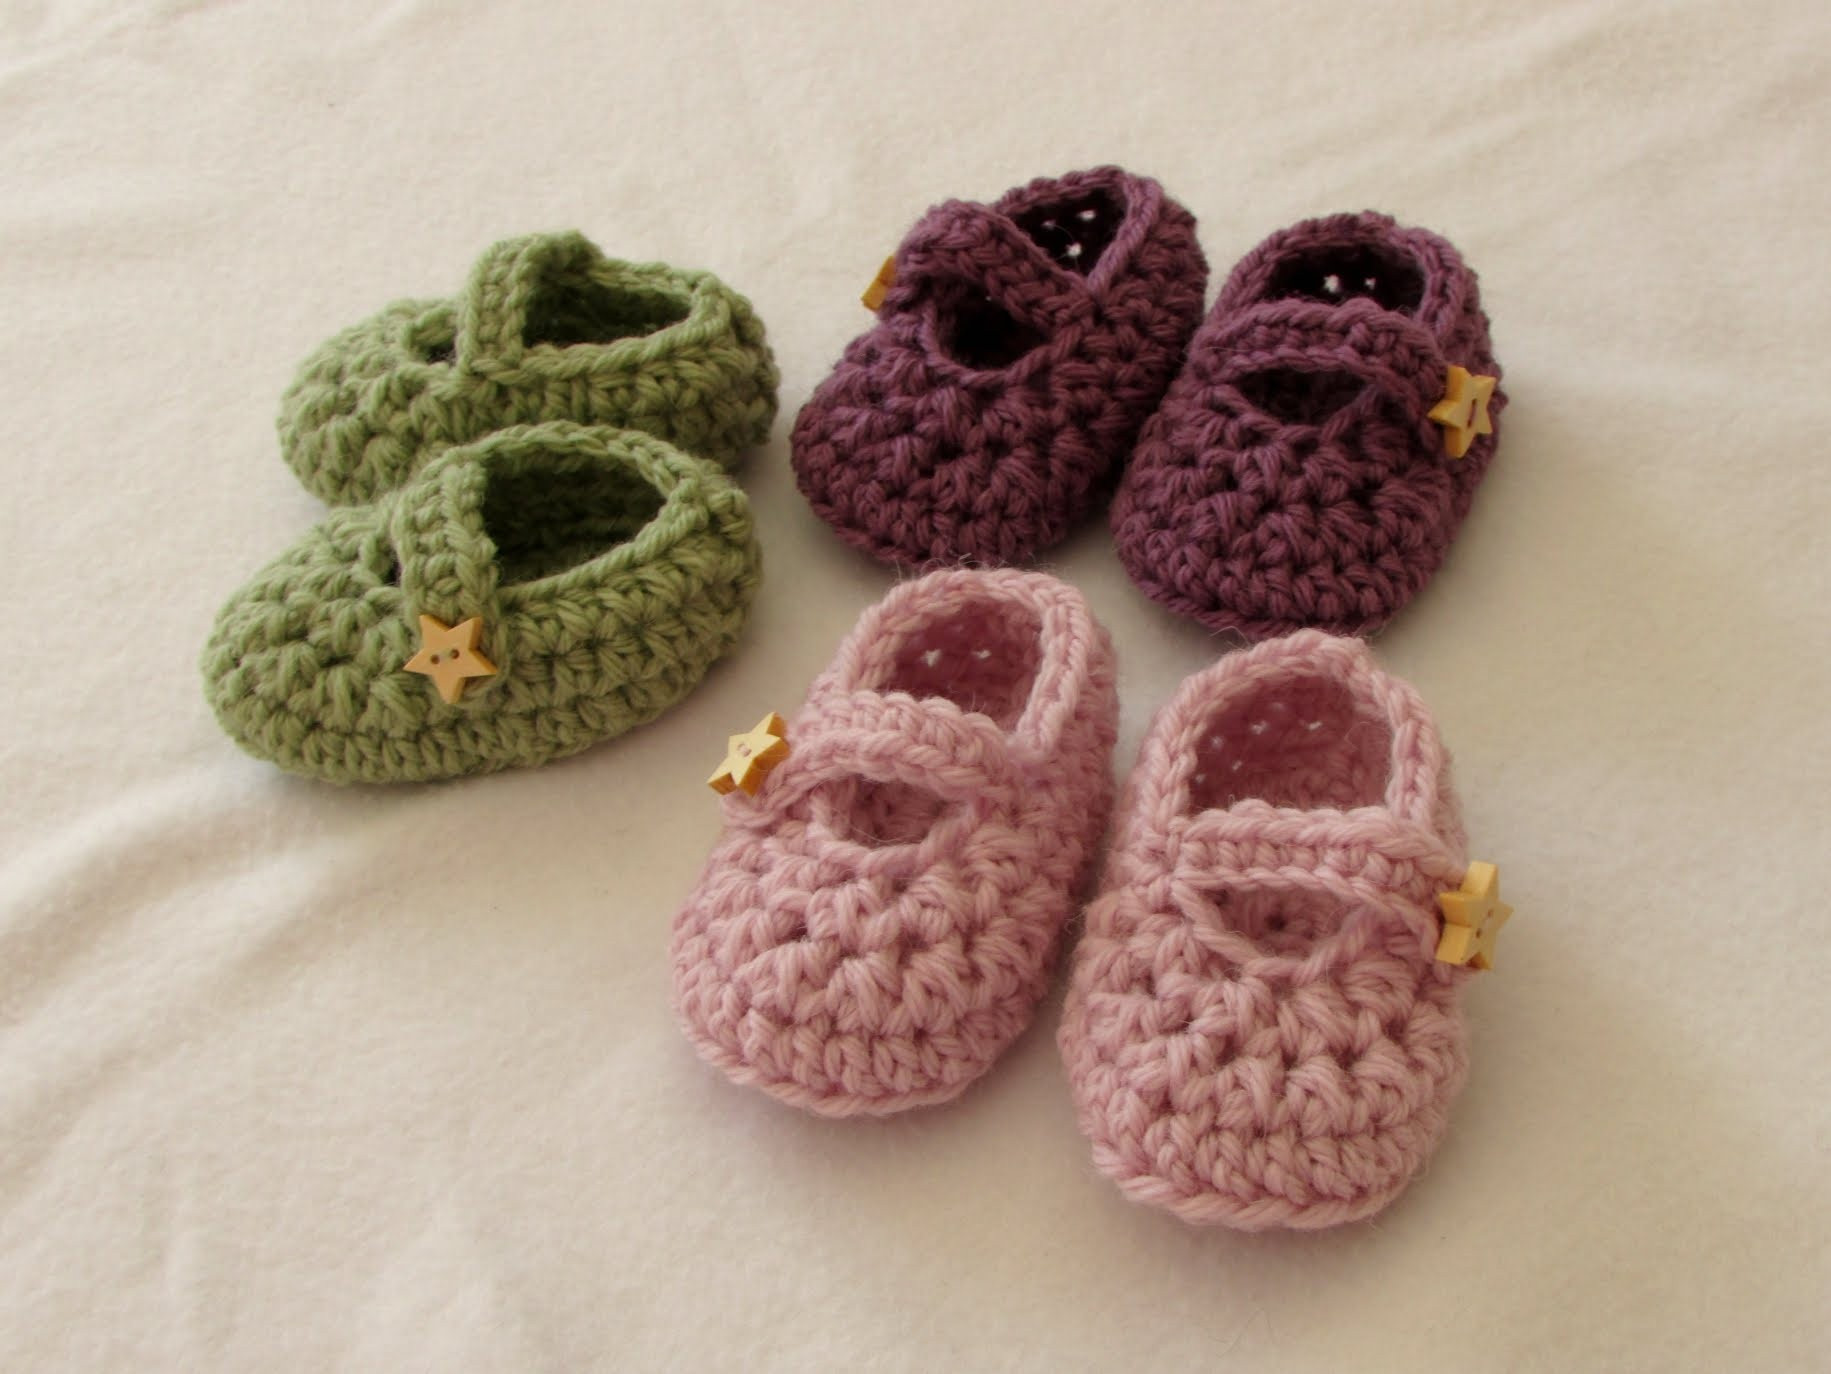 Free Crochet Patterns for Baby Shoes Beautiful Free Crochet Patterns for Beginners Baby Booties Of Wonderful 50 Photos Free Crochet Patterns for Baby Shoes